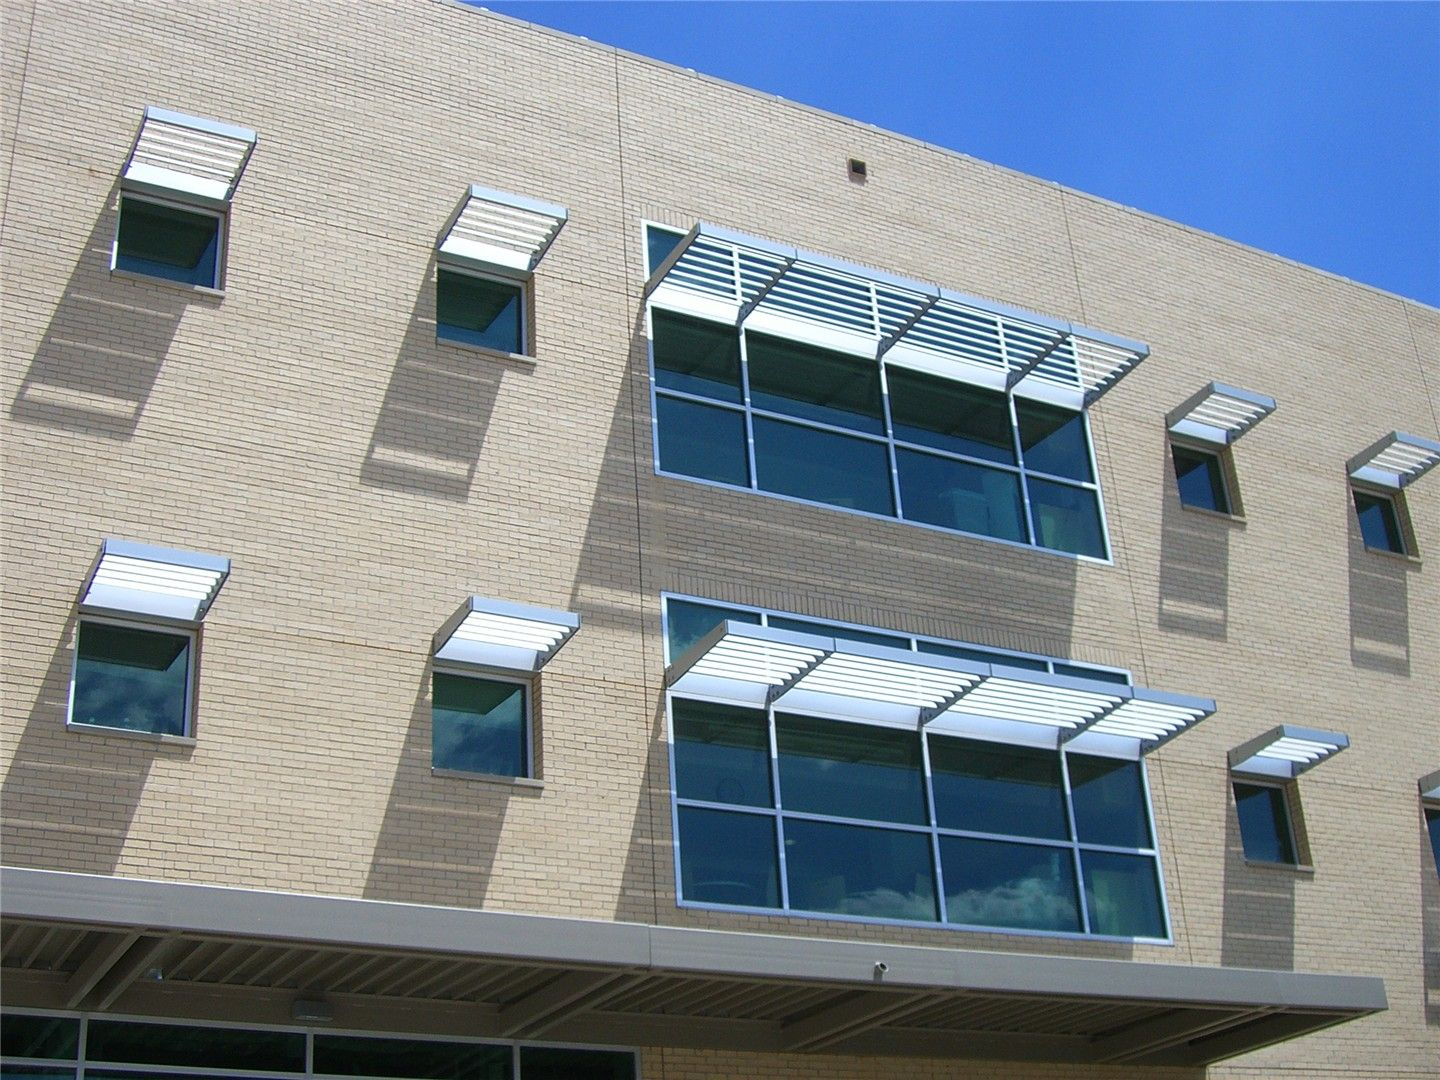 Sun Control Devices Keep Your Building Cool And Comfortable While Giving A Sleek And Modern Look